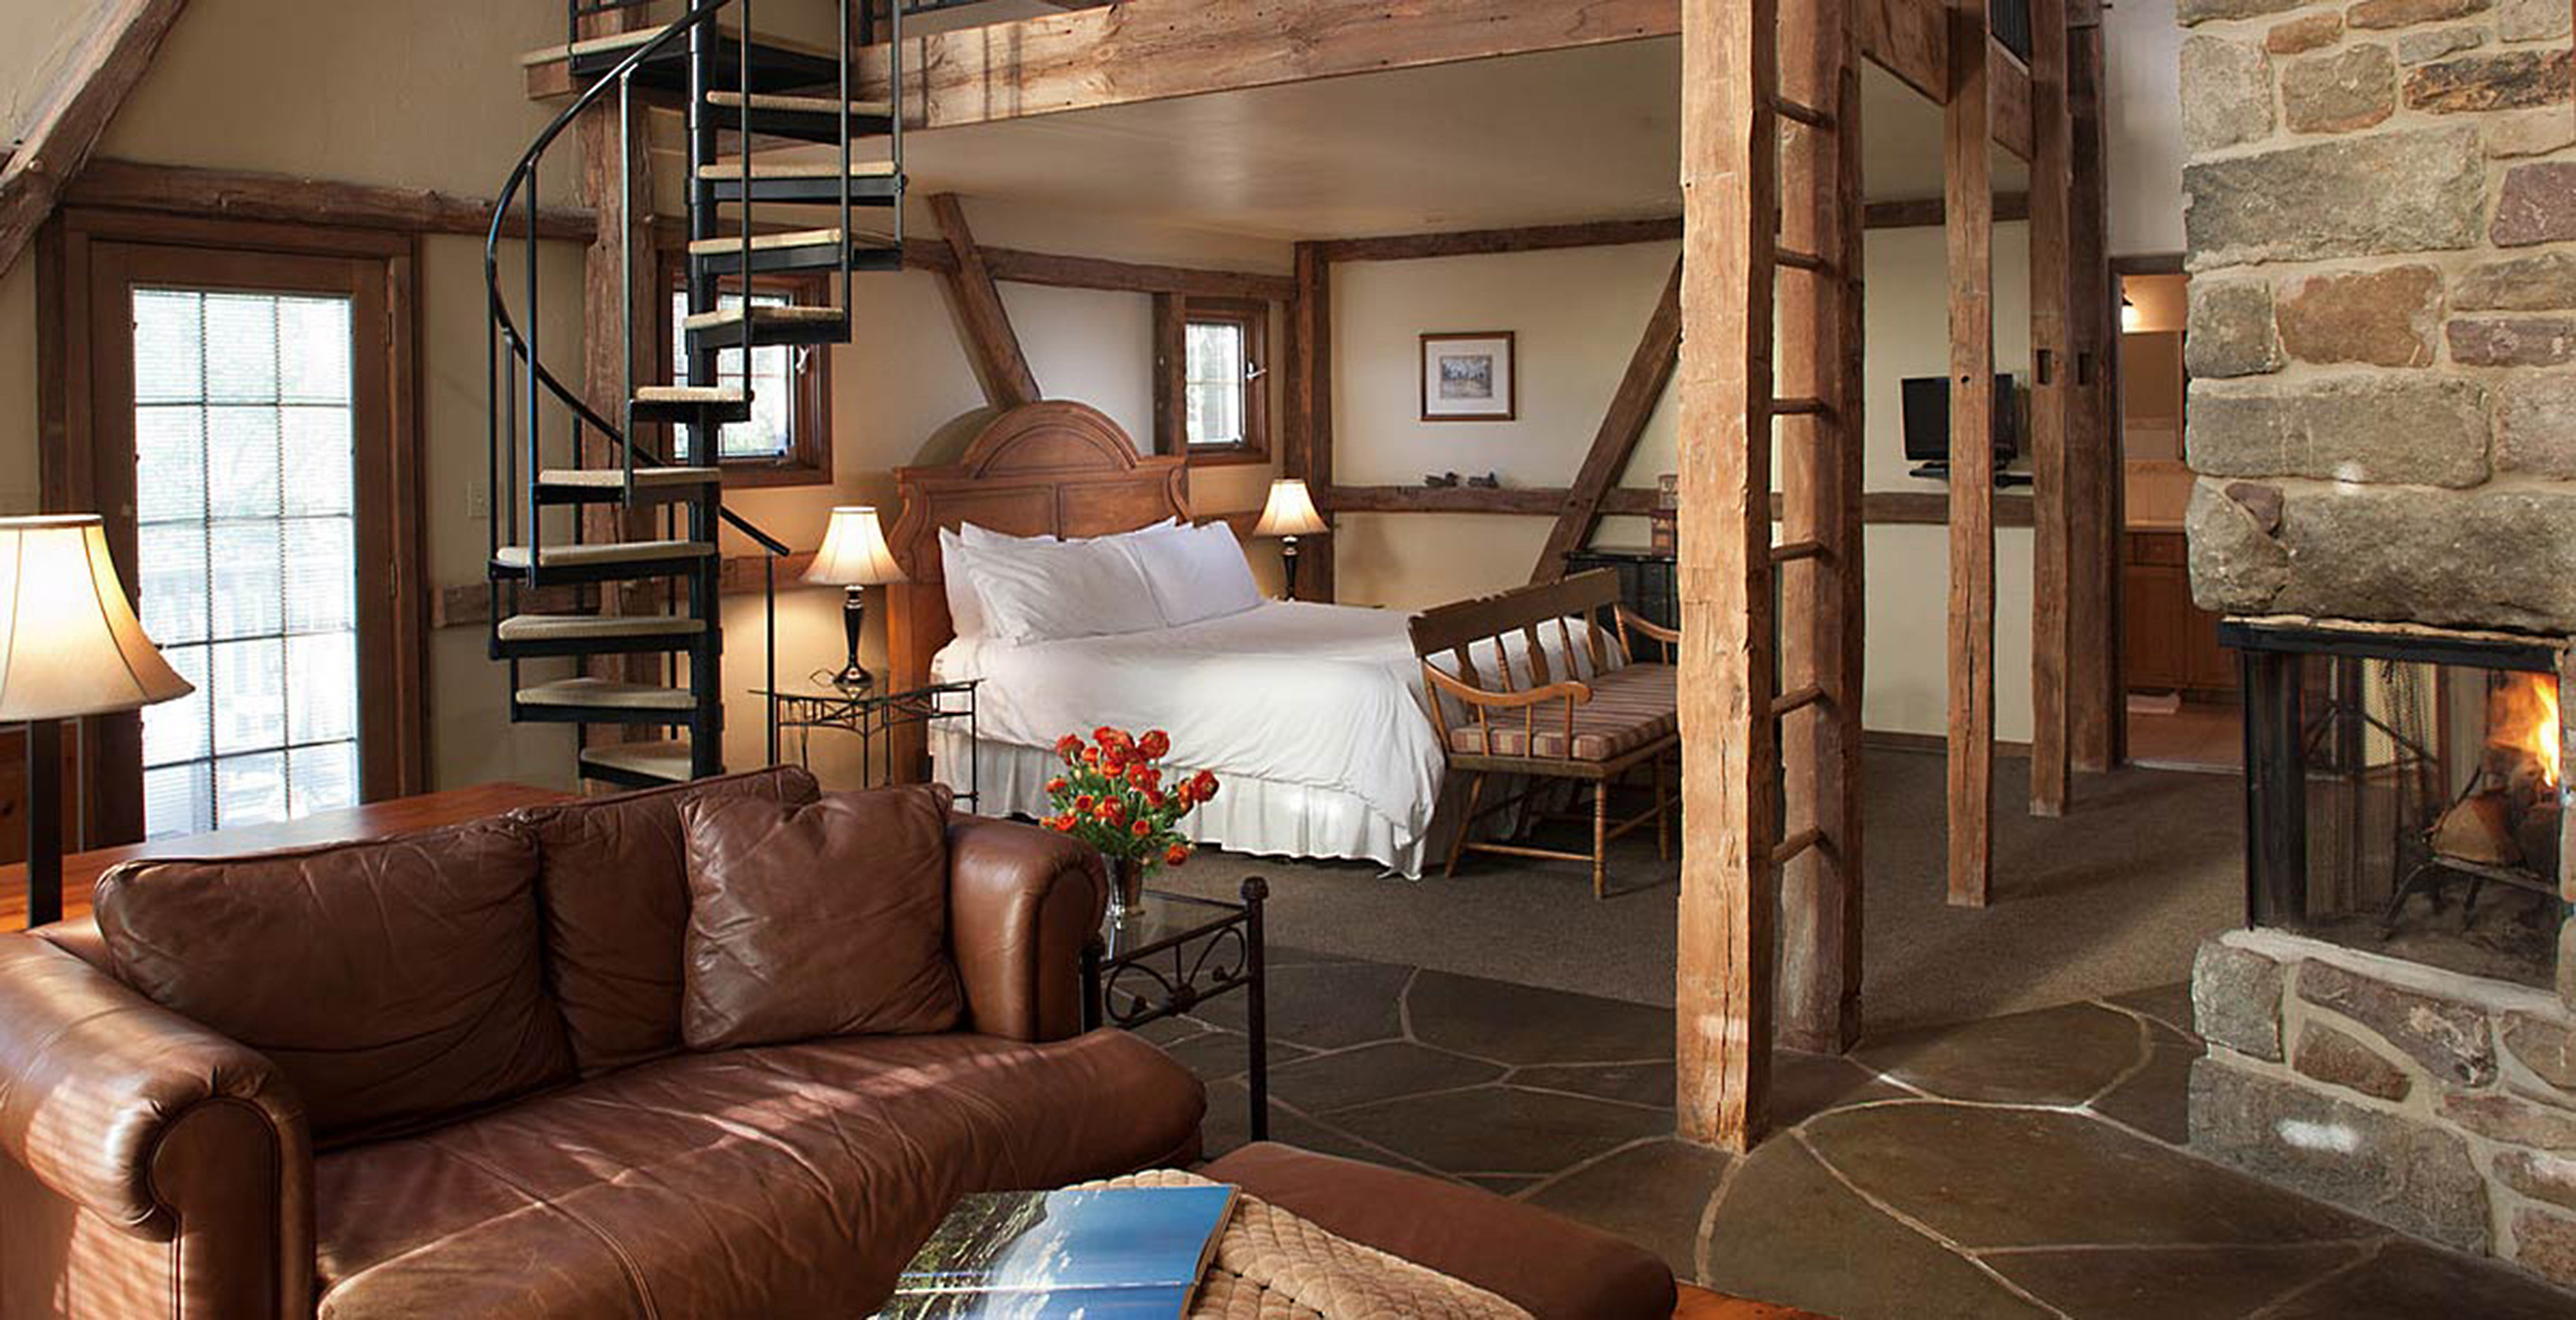 Bath Bedroom Fireplace Inn Rustic sofa living room property home house cottage farmhouse loft log cabin leather